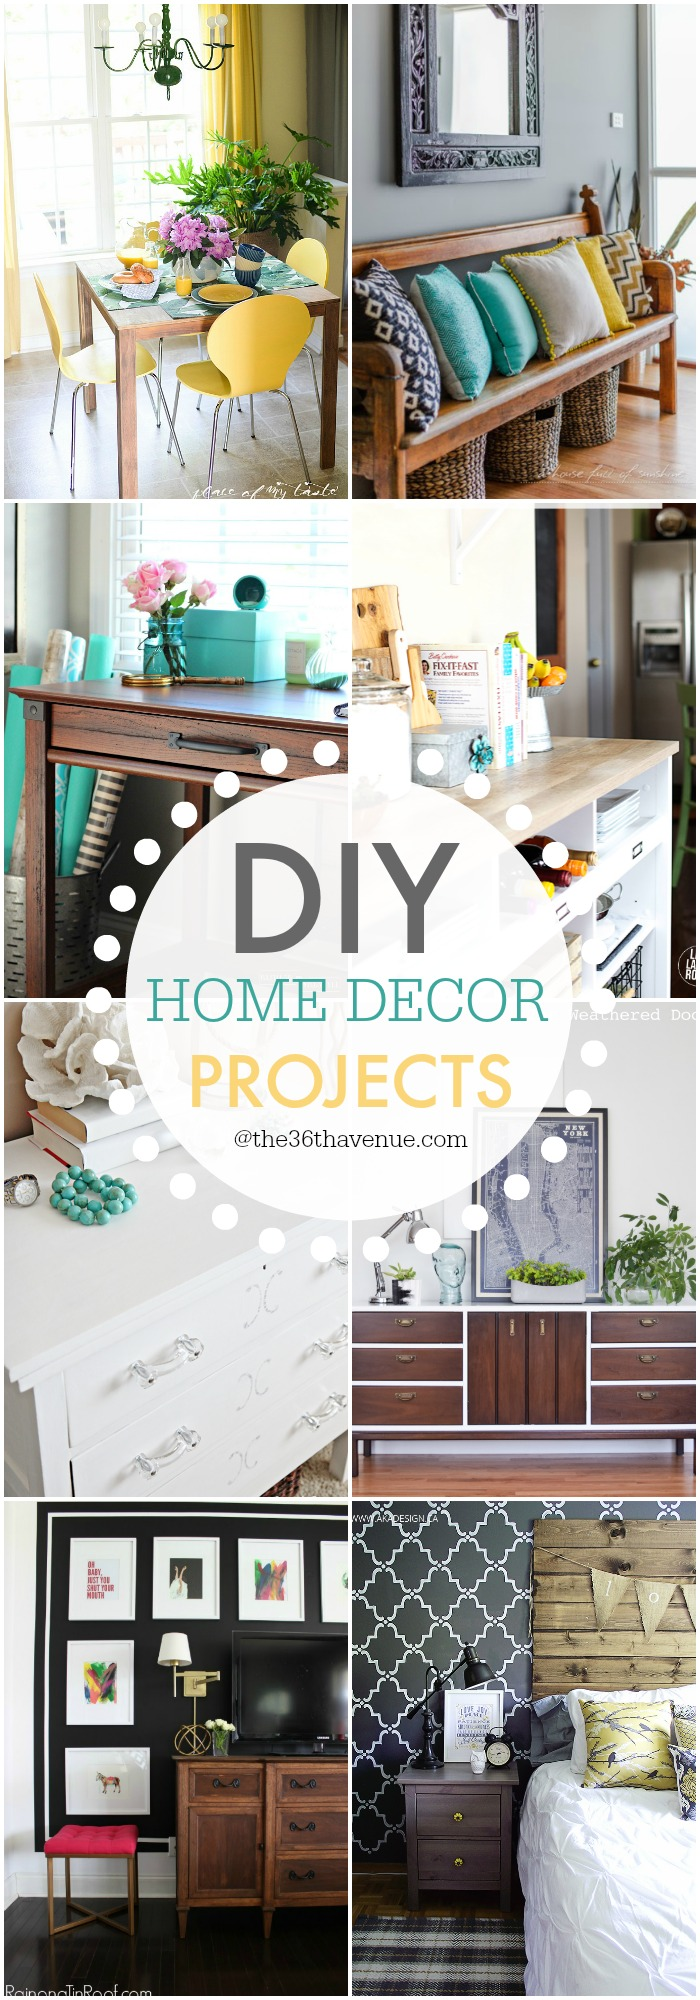 The 36th avenue diy home decor projects and ideas the for Home and decor ideas